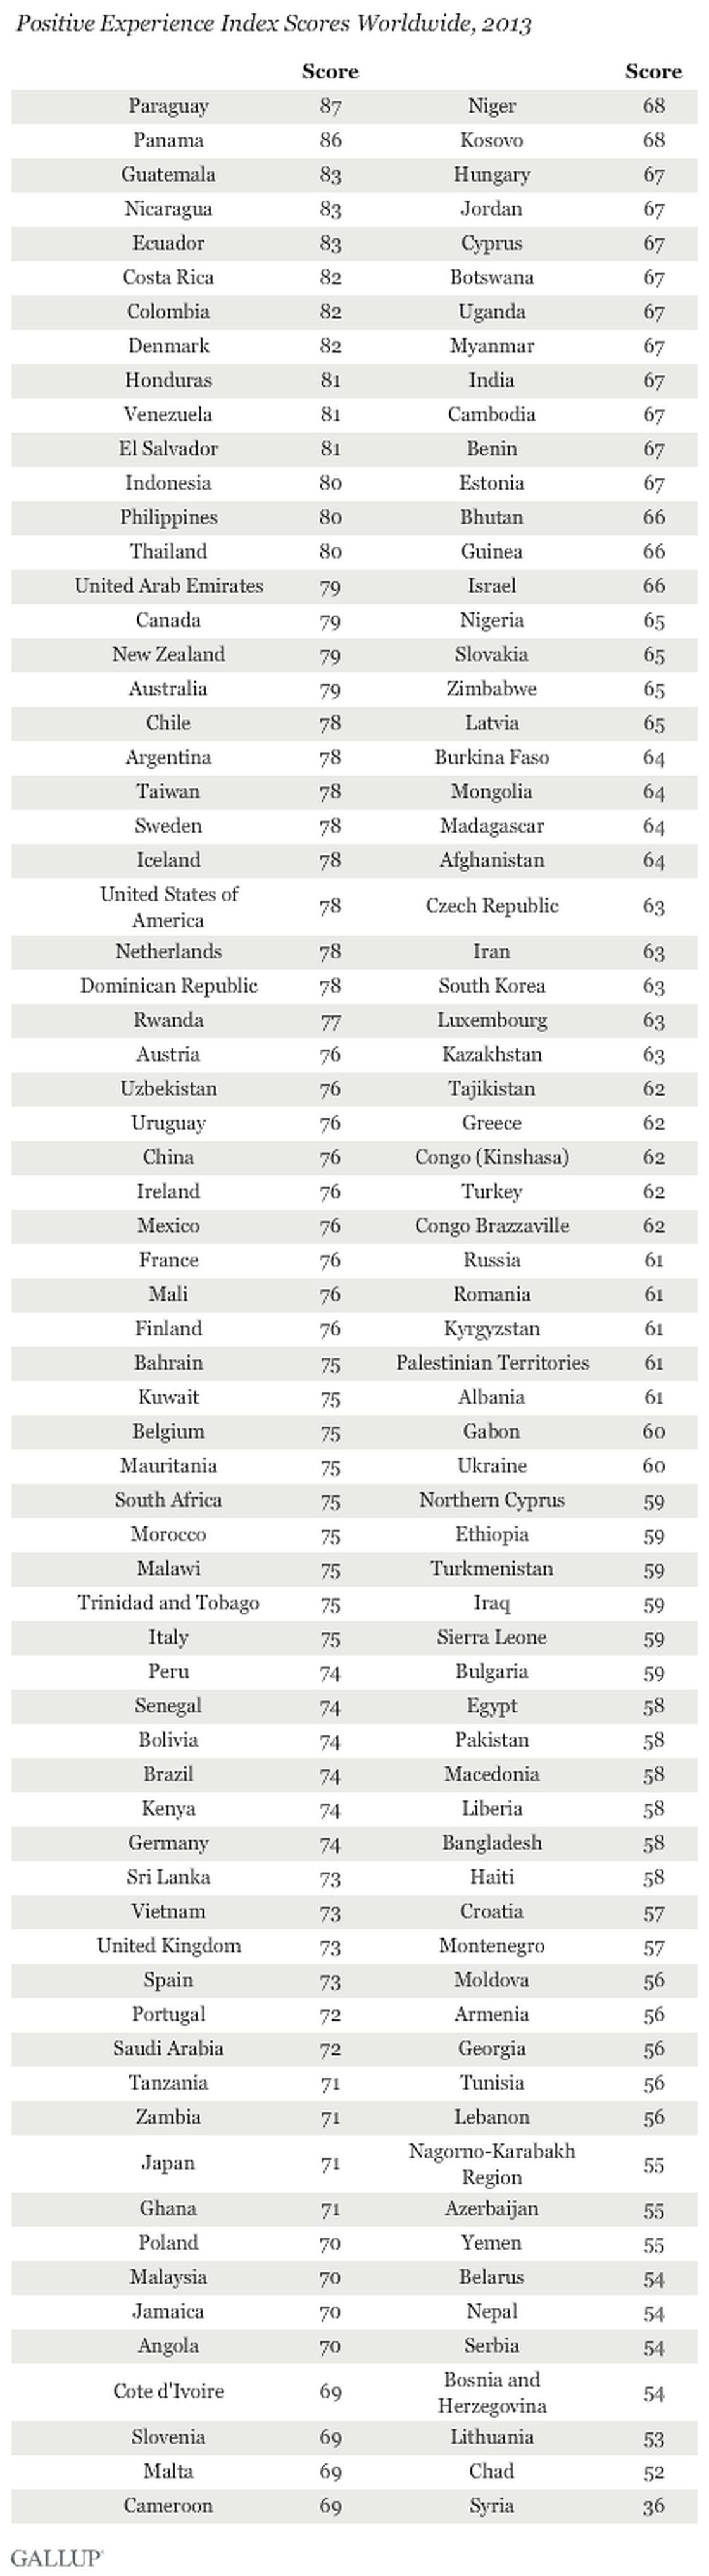 The positive experience index shows the rankings of 138 of the world's countries, according to a recent Gallup poll. Paraguay led the list, with a score of 87; the United States tallied a 78. Gallup